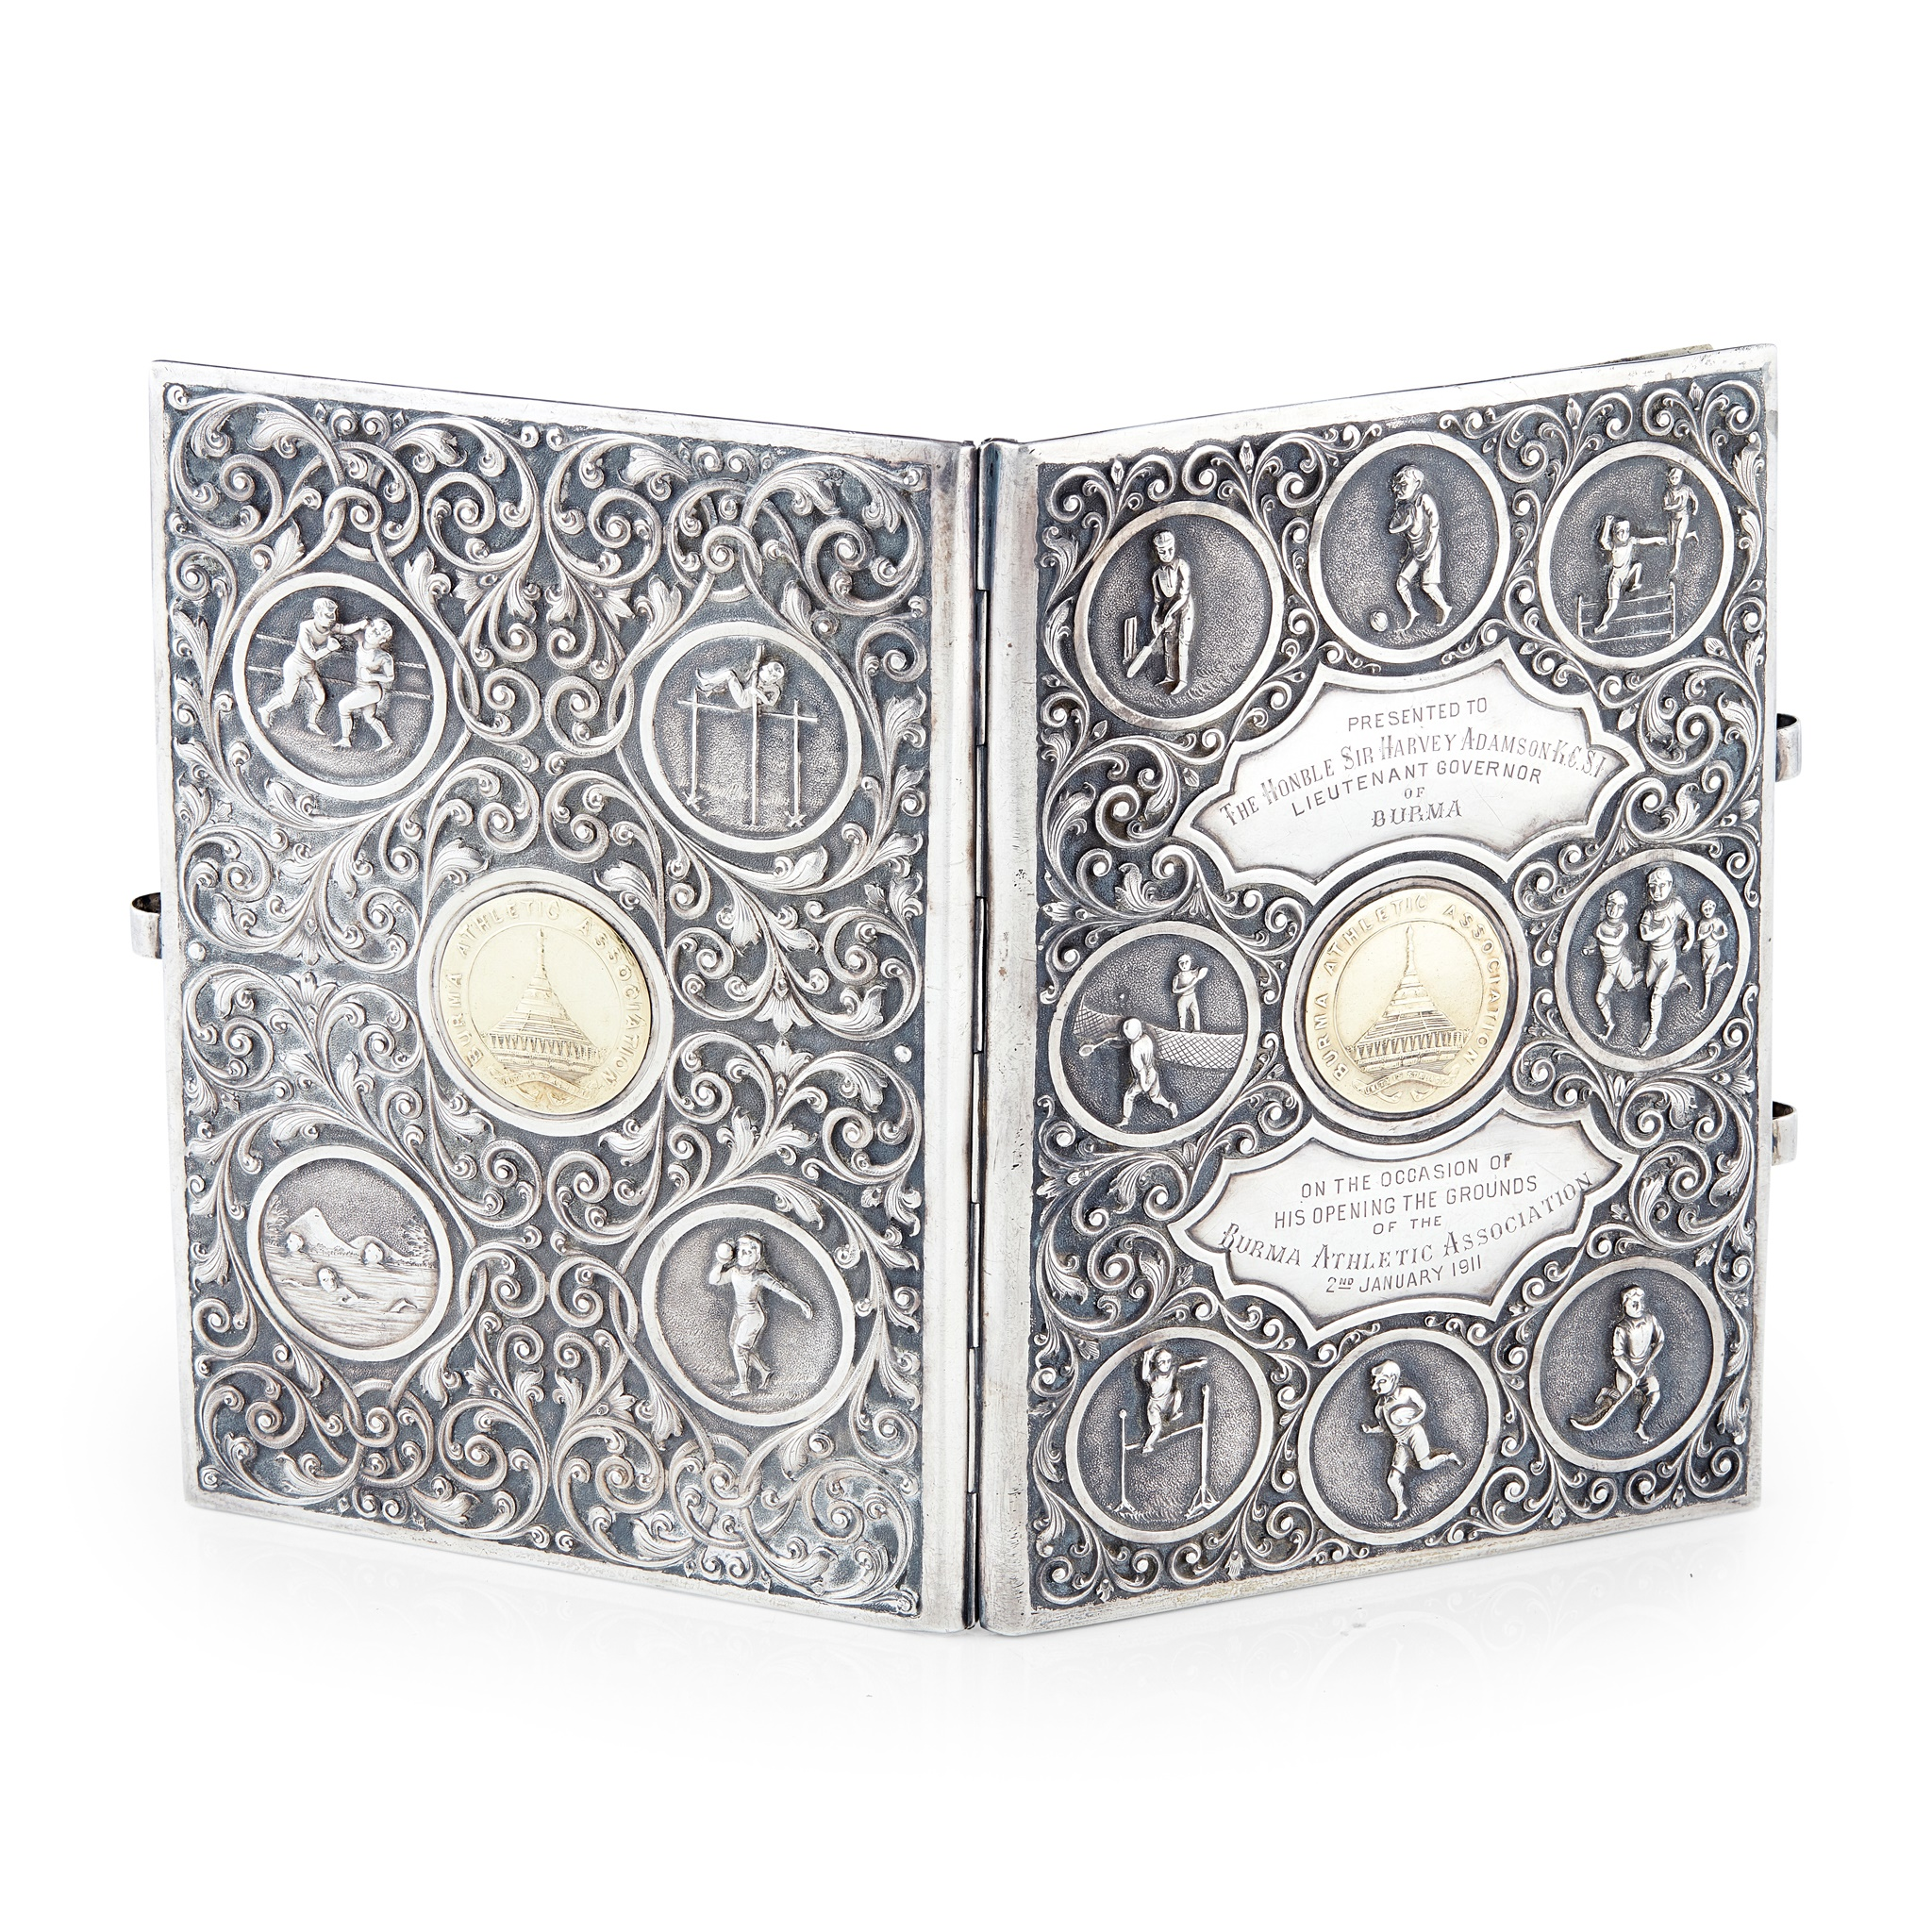 BURMESE SILVER AND SILVER GILT NOTEBOOK COVER, RELATING TO THE BURMA ATHLETIC ASSOCIATION DATED